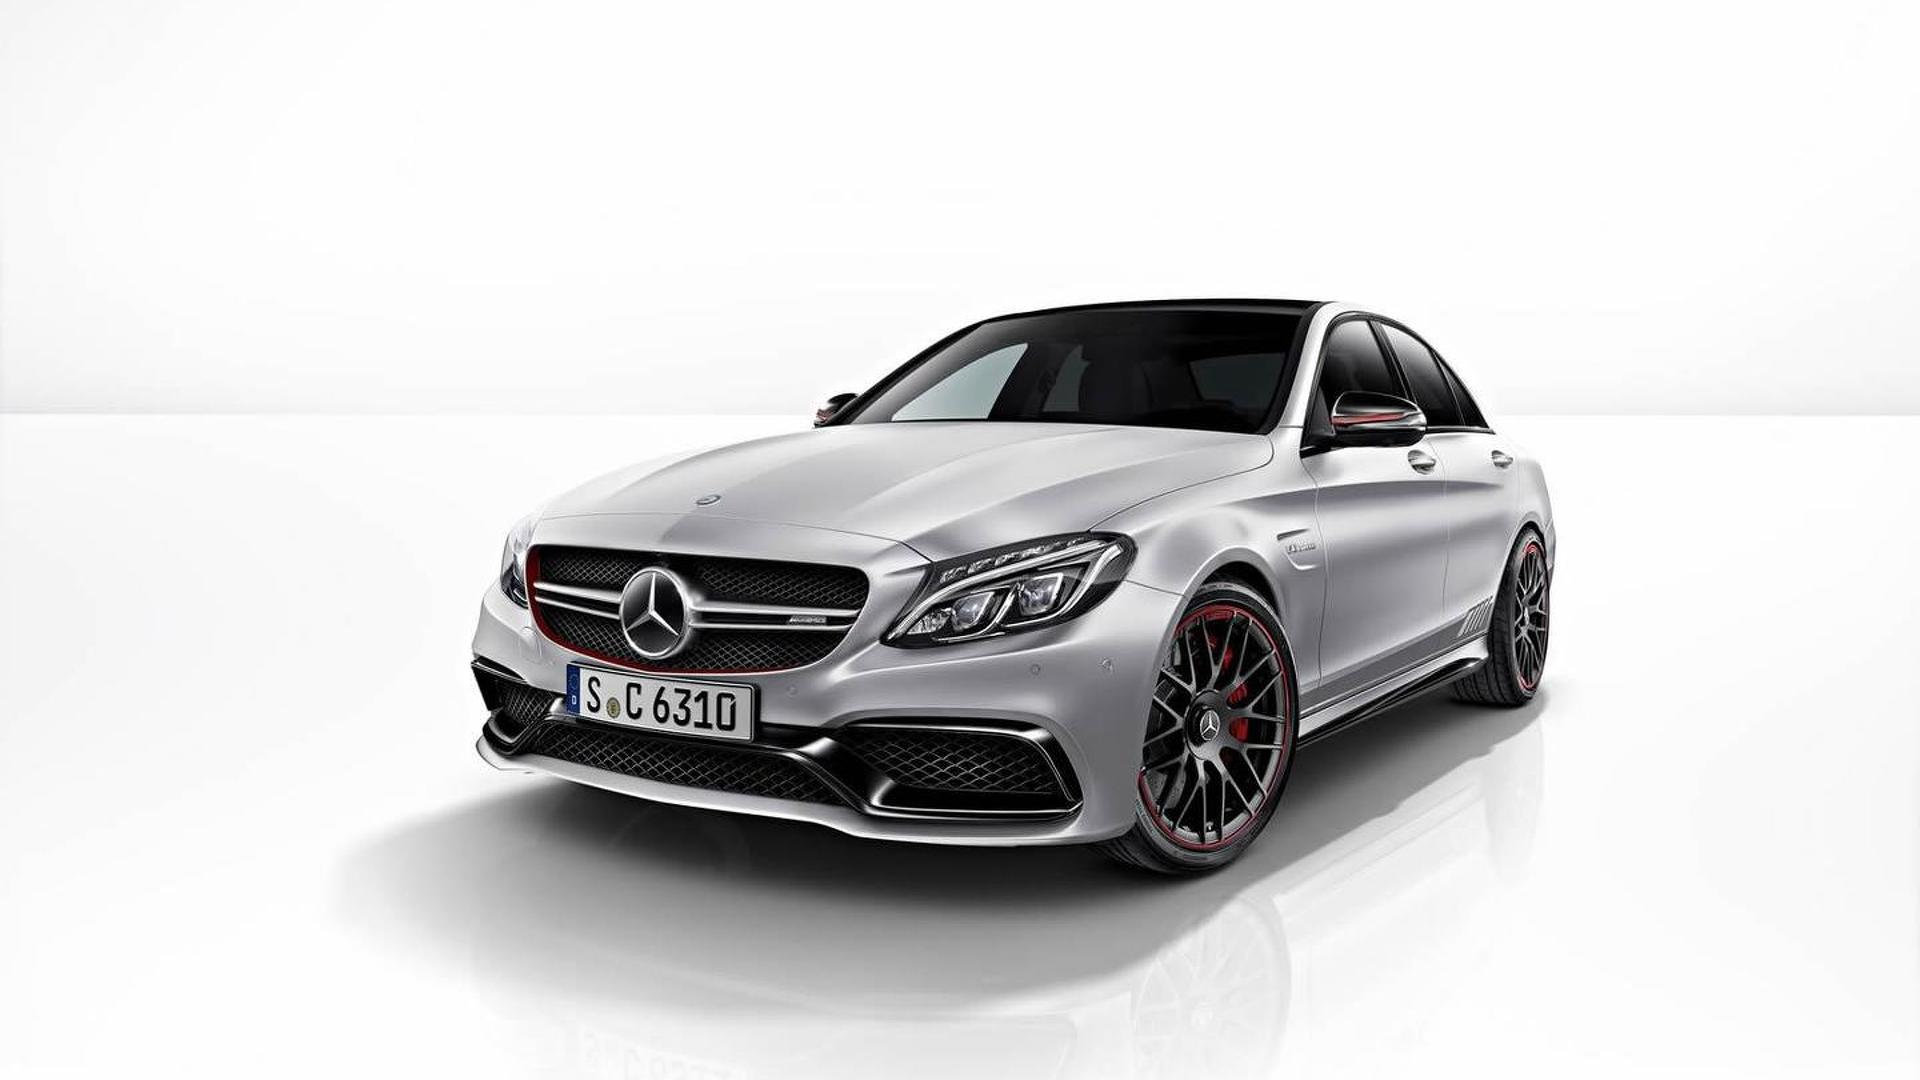 Mercedes-AMG C63 S Edition 1 detailed